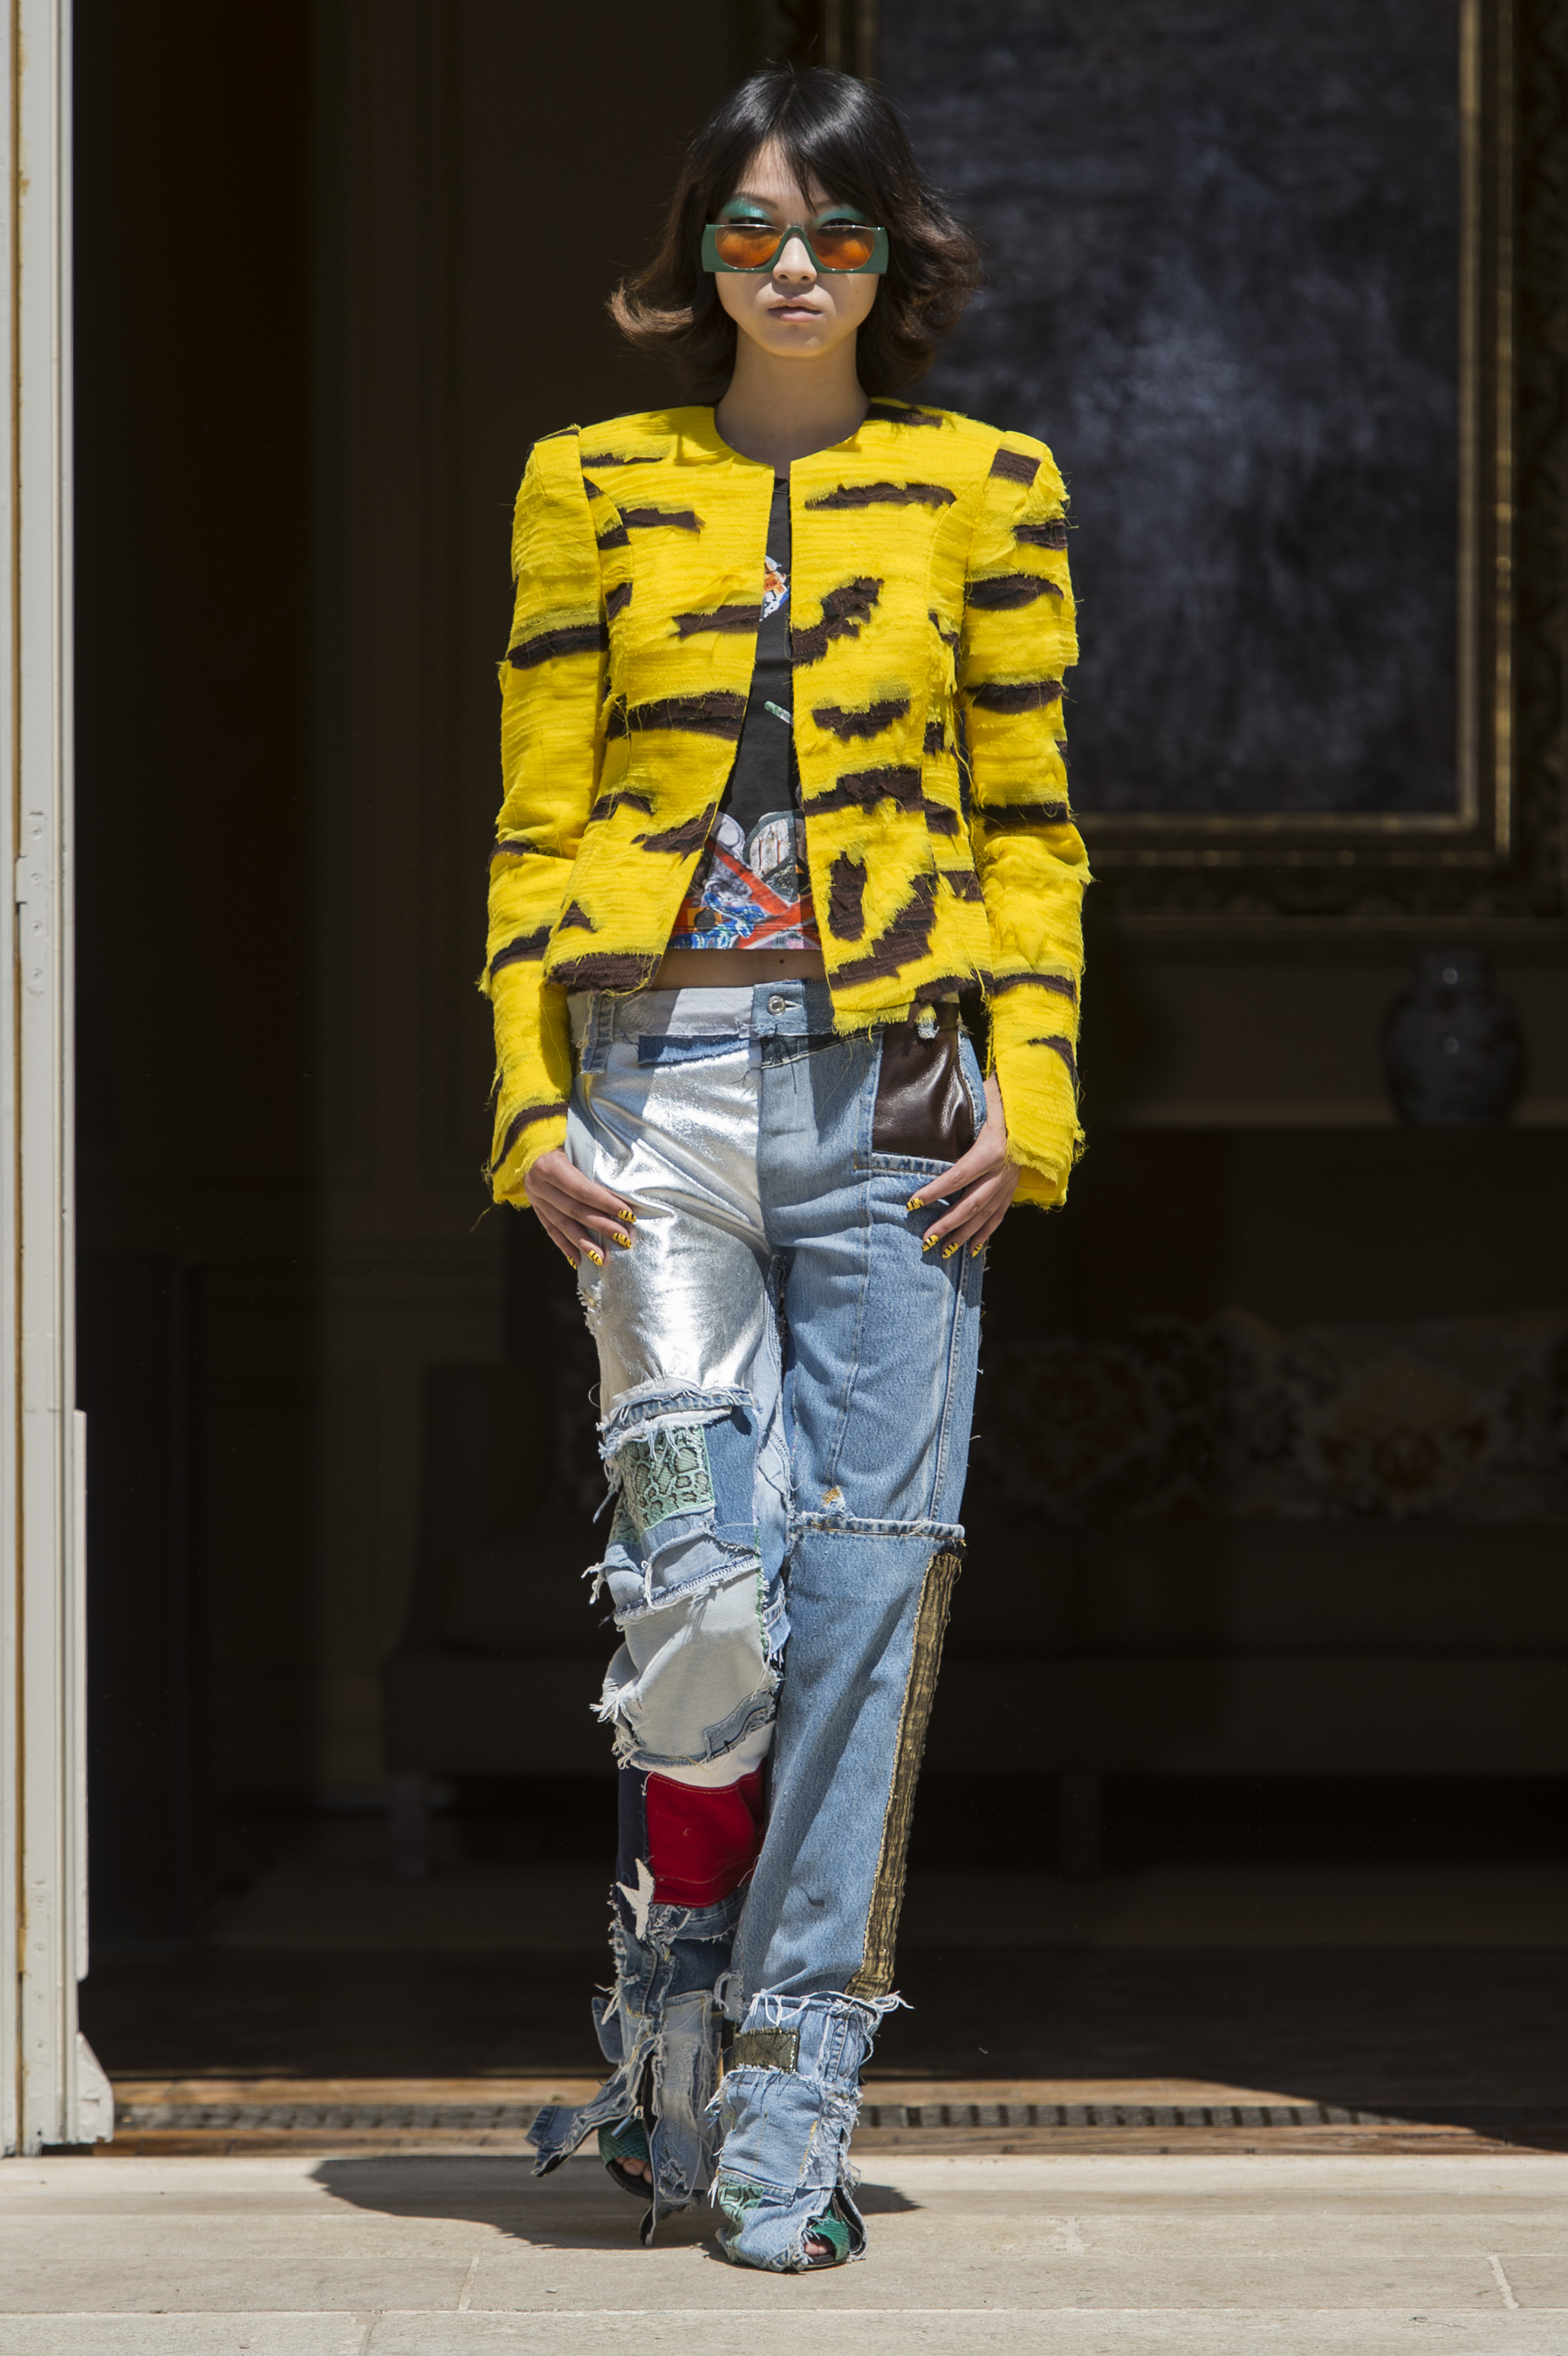 Paris Top 10 Spring 2020 Men's Fashion Shows